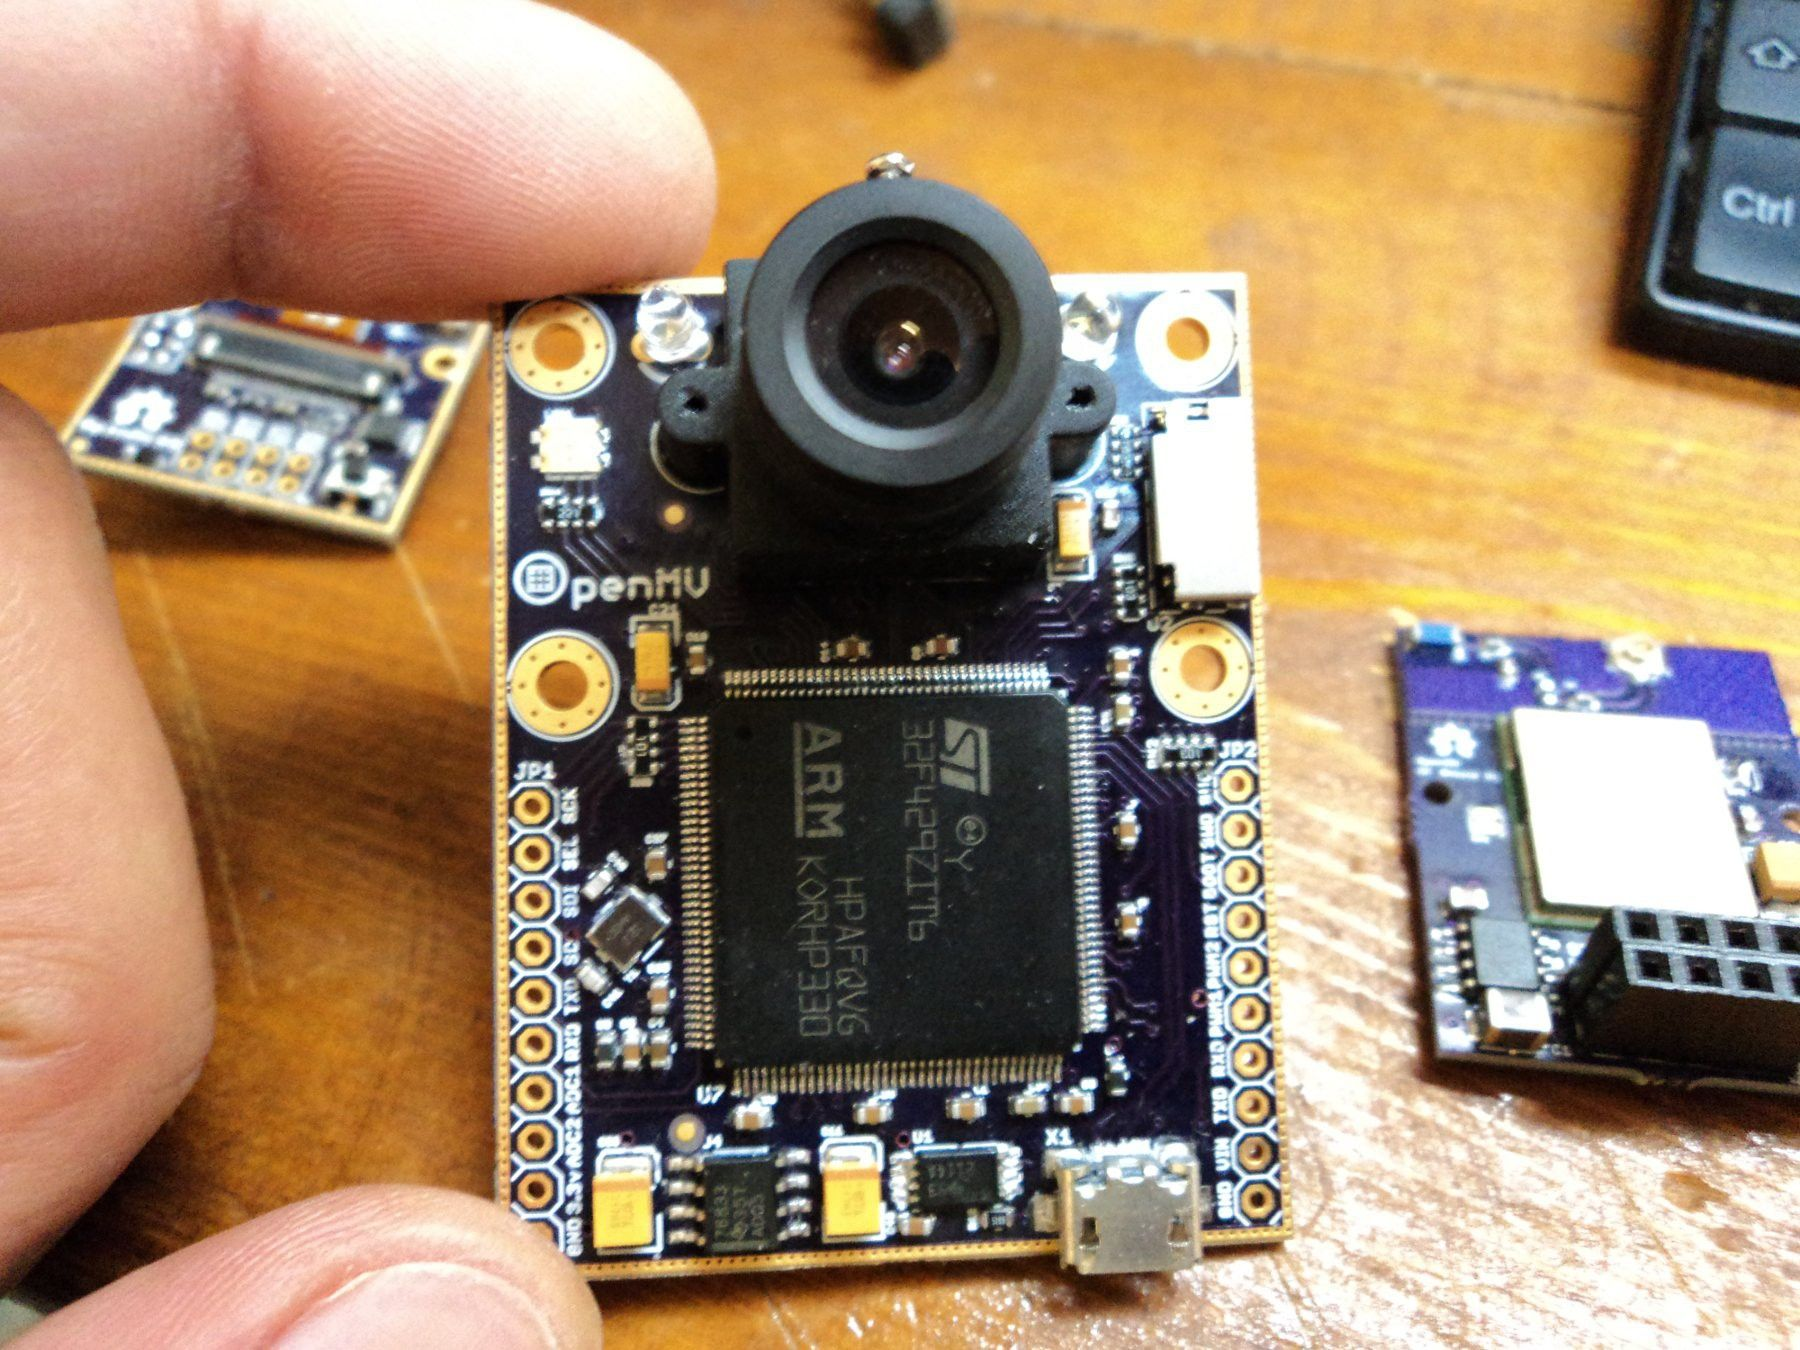 The OpenMV project aims at making machine vision more accessible to ...